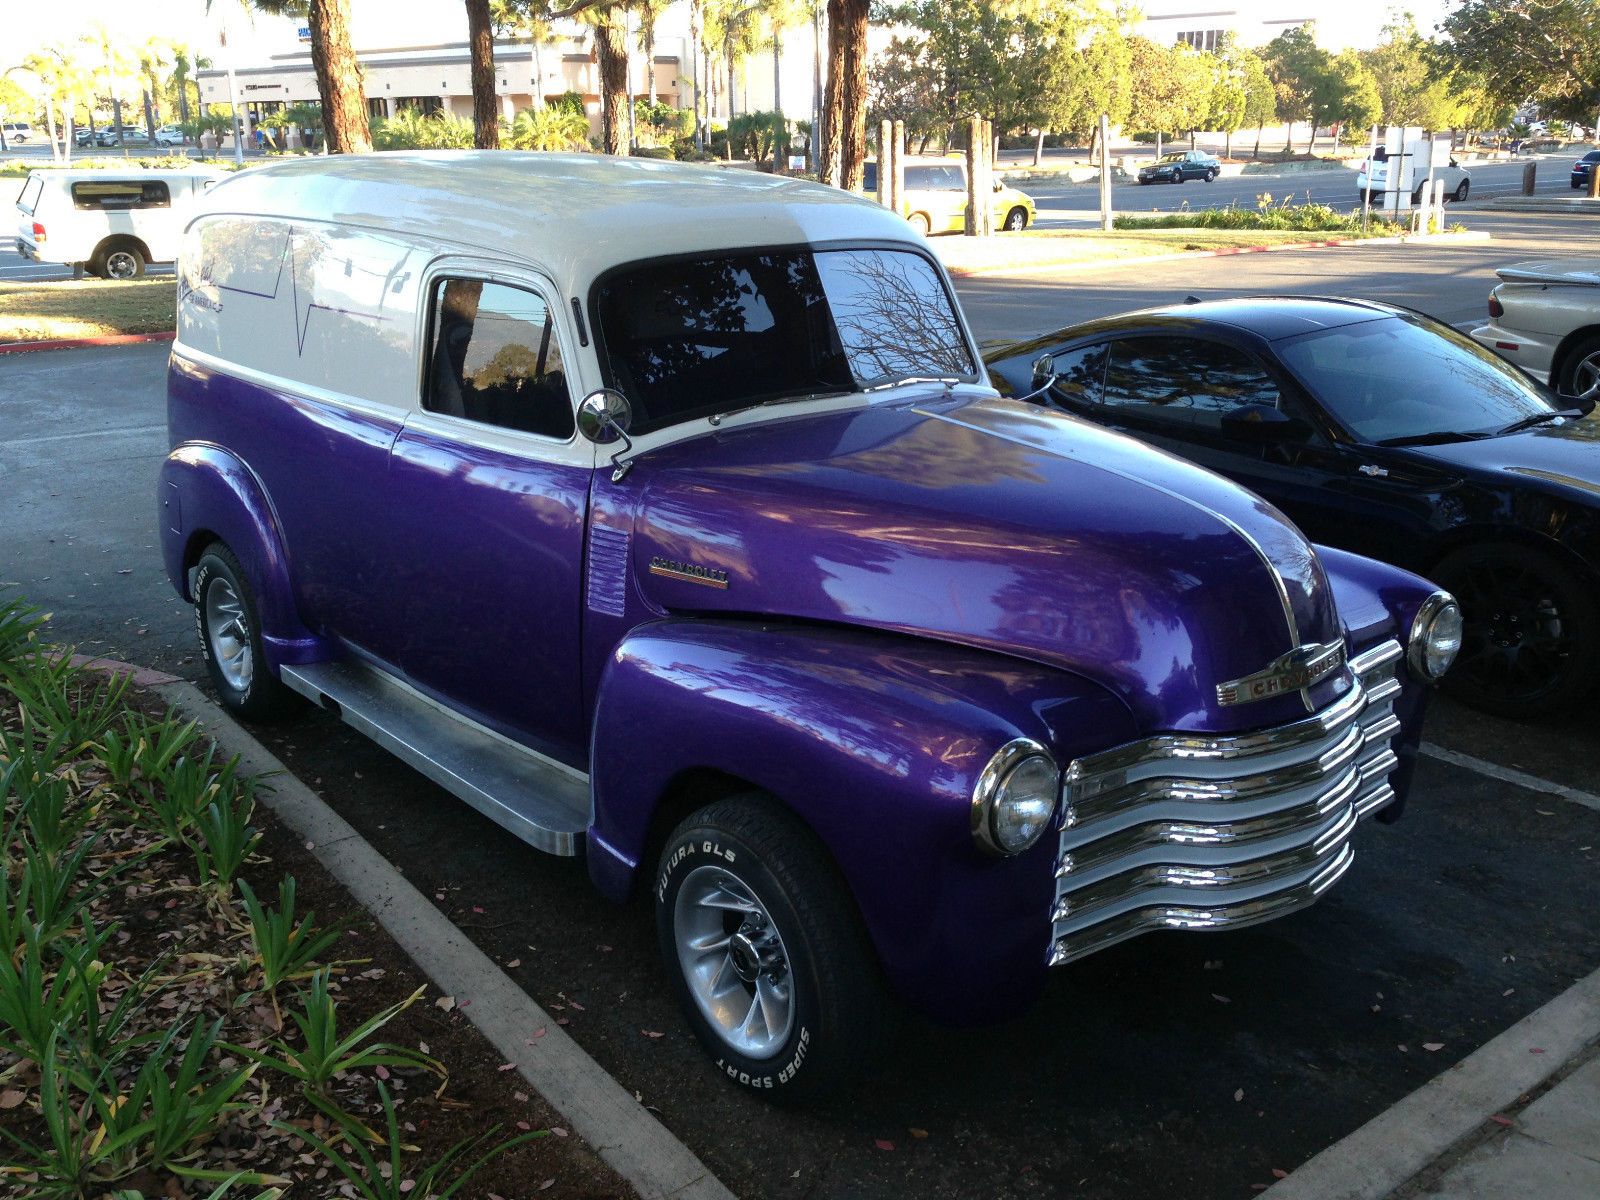 1950 Chevrolet Panel Truck Classic Hot Street Rod Muscle 3100 Not 1949 Chevy Vin Location Pick Up